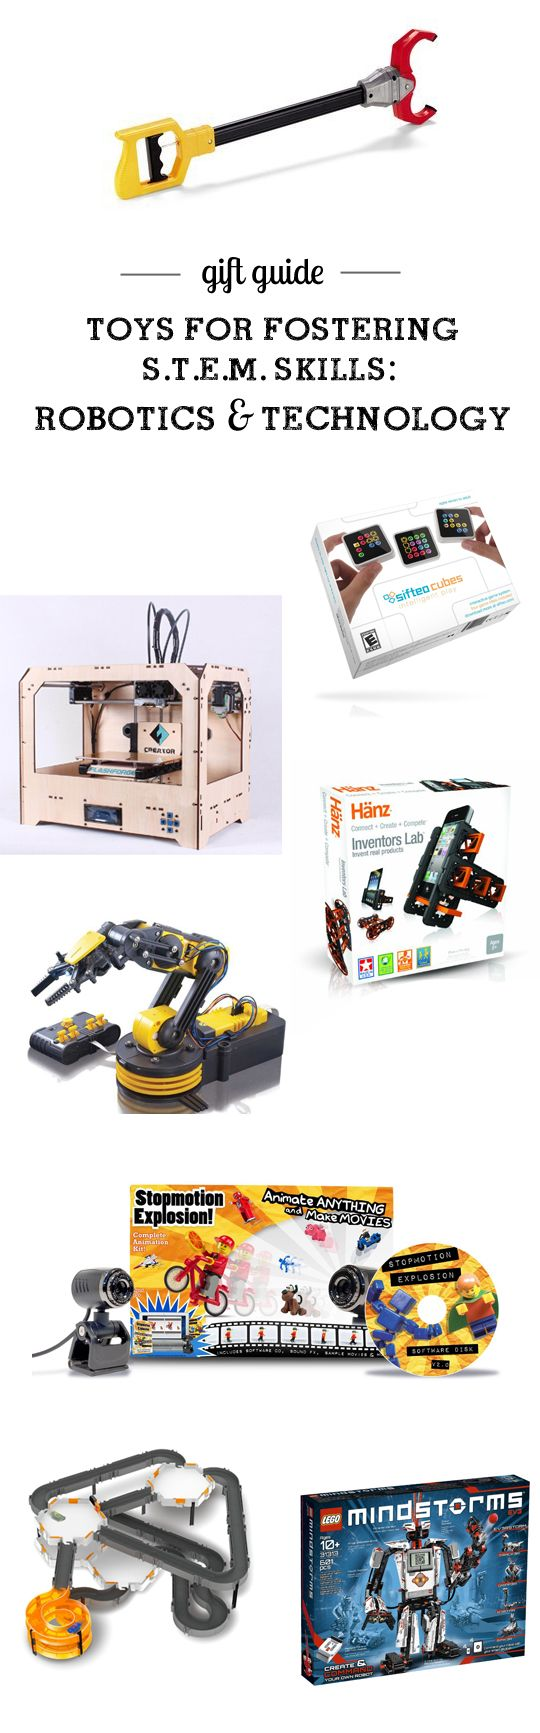 MPMK Toy Gift Guide: Best STEM Toys (Science, Technology, Engineering & Math): Best Robotics Toys and Best Tech Toys - great detailed toy descriptions and suggested ages here.